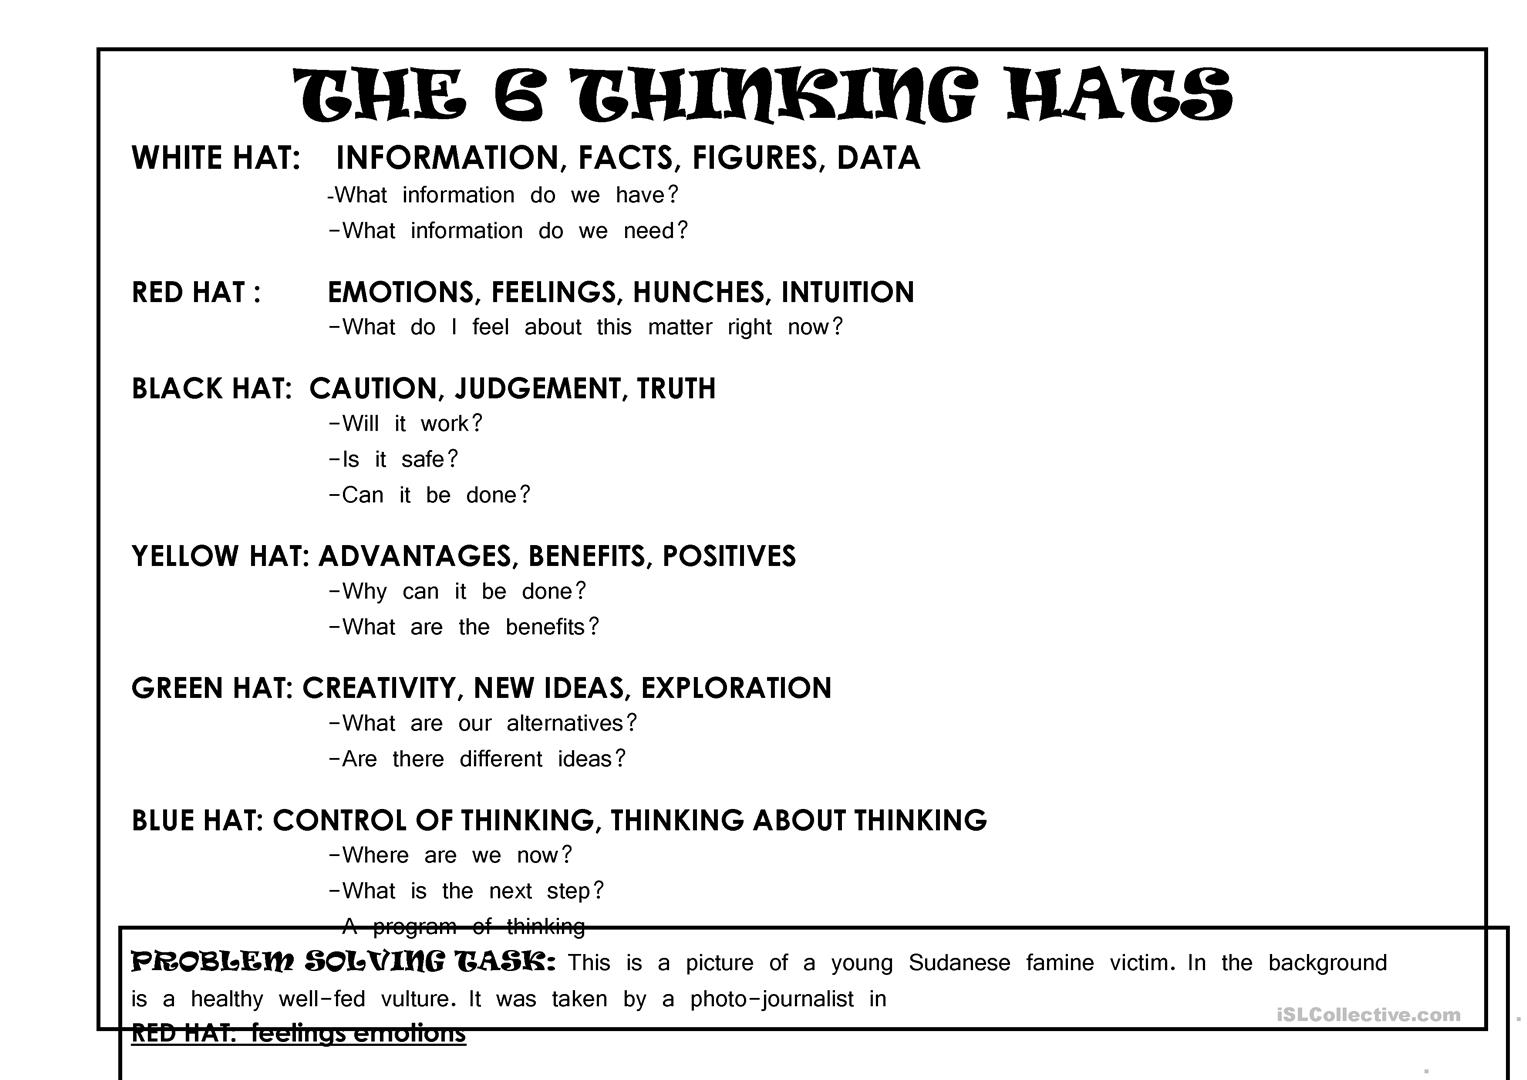 6 Thinking Hats Critical Thinking Lesson Worksheet